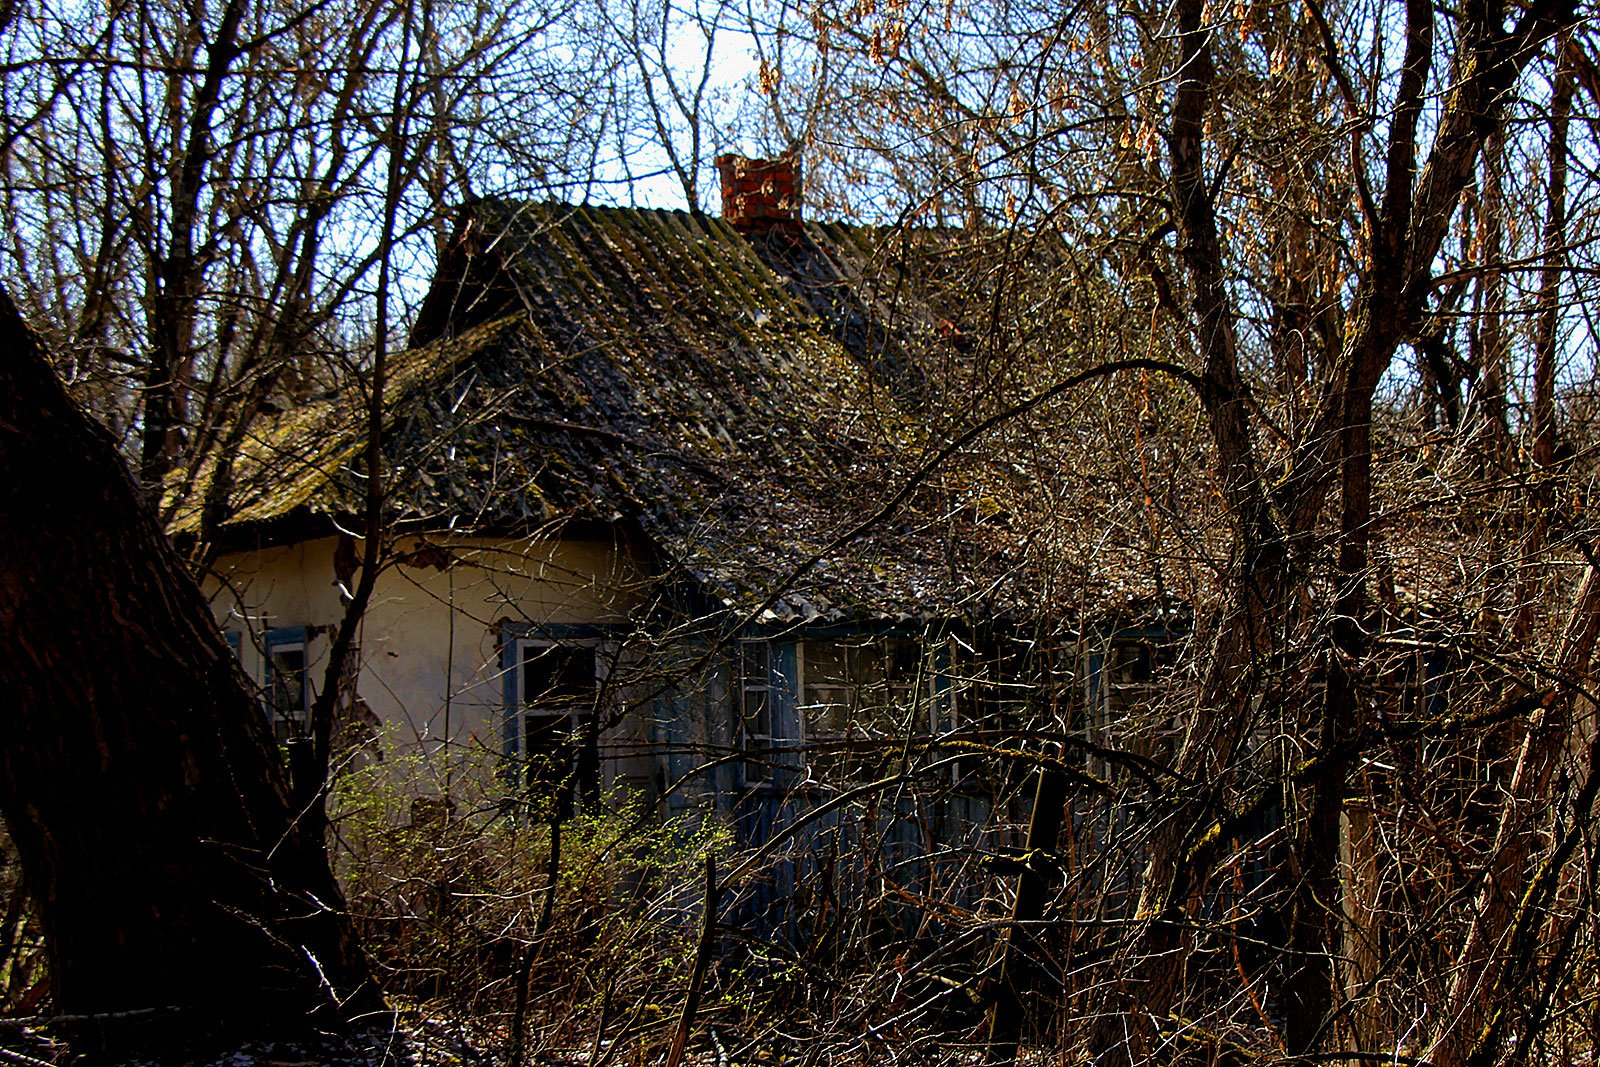 How to see ghost houses in the exclusion zone in Chernobyl